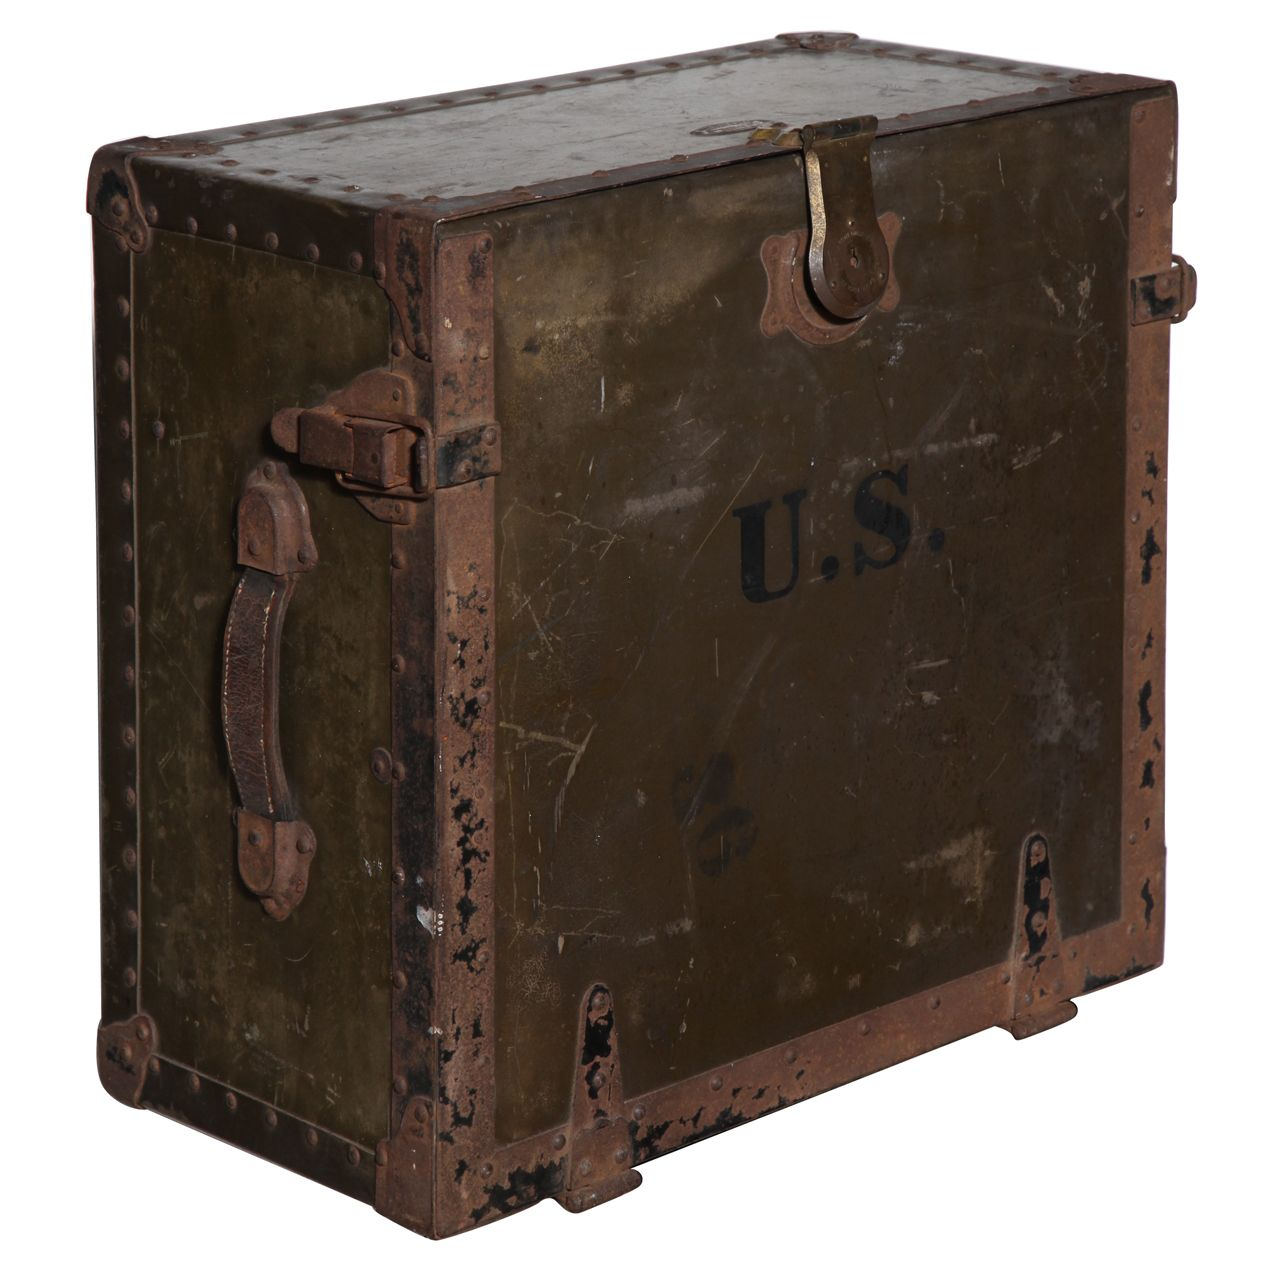 WWI Army Field Desk boxes cases and other traveling lives